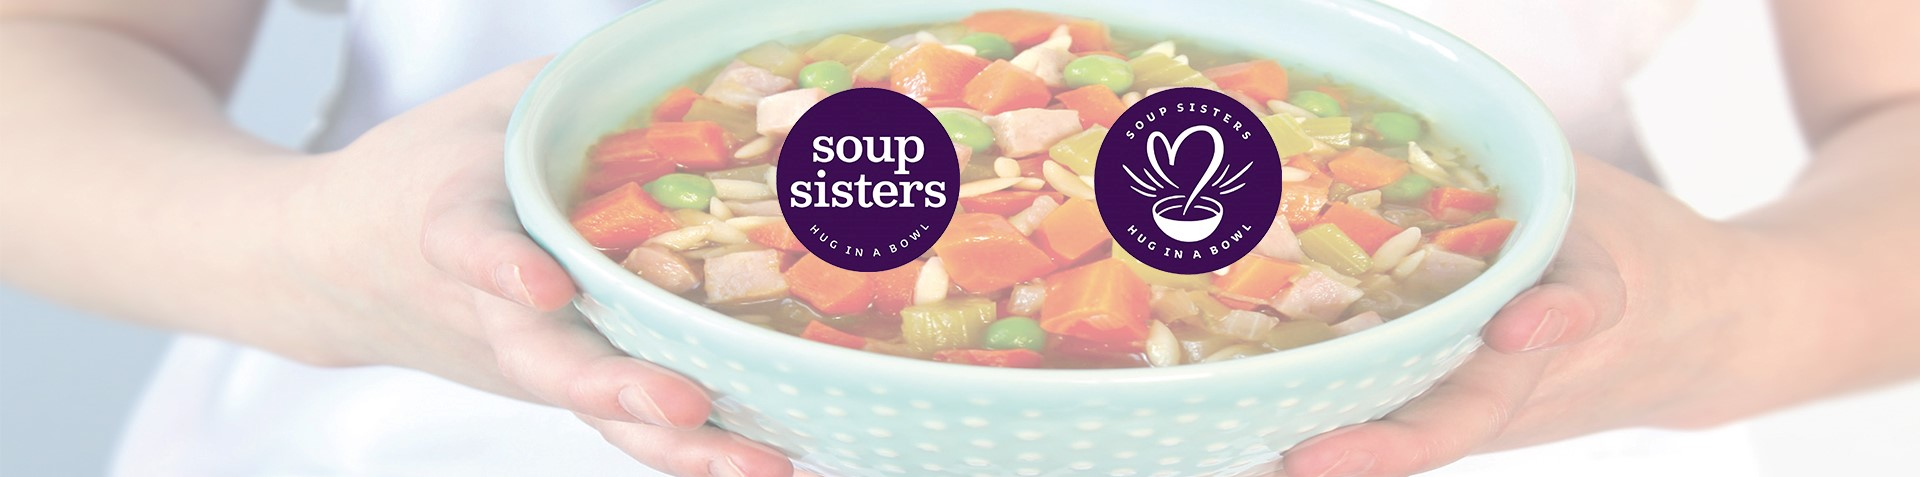 Victoria Soup Sisters